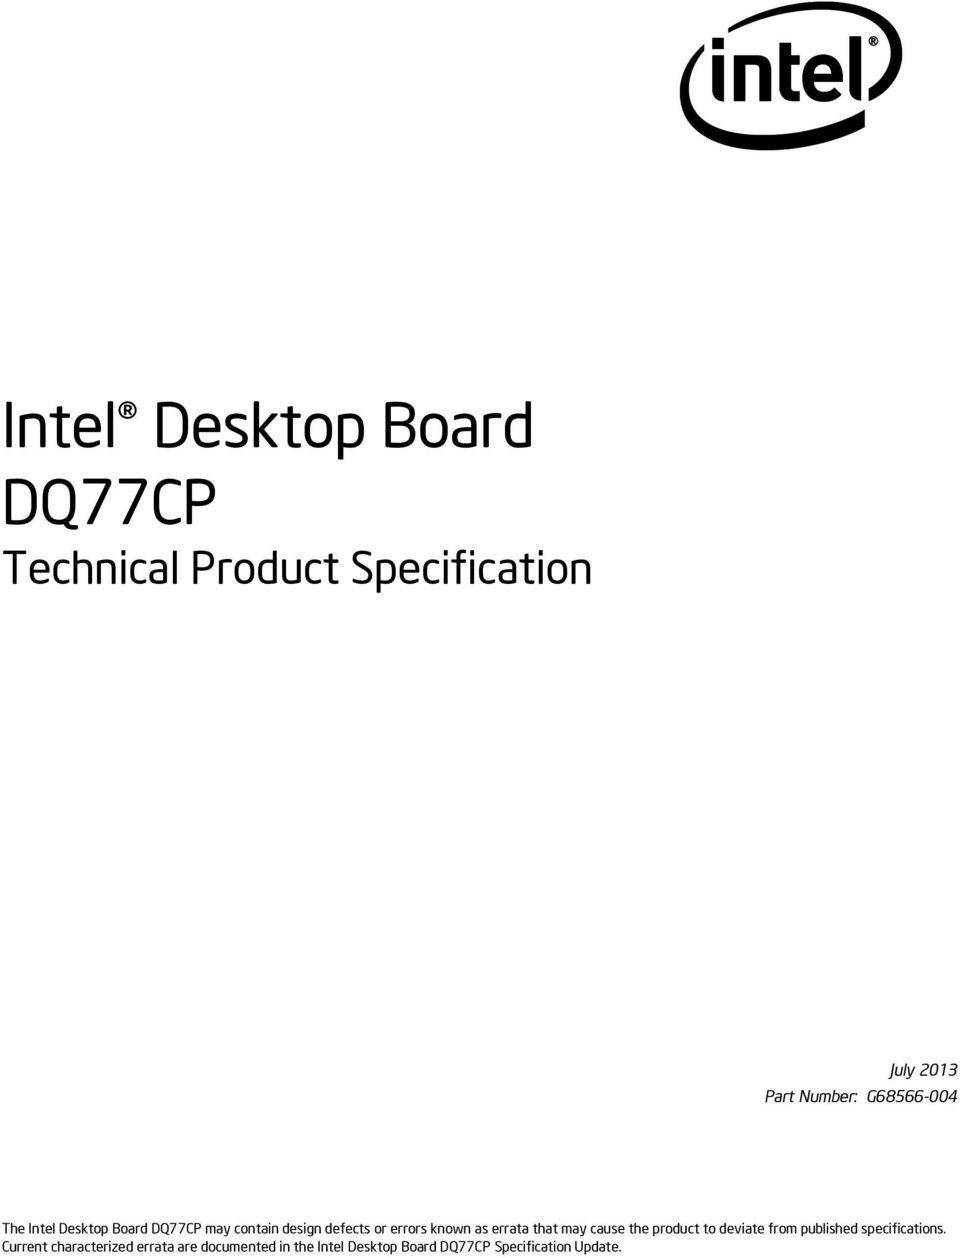 Intel Desktop Board DQ77CP - PDF